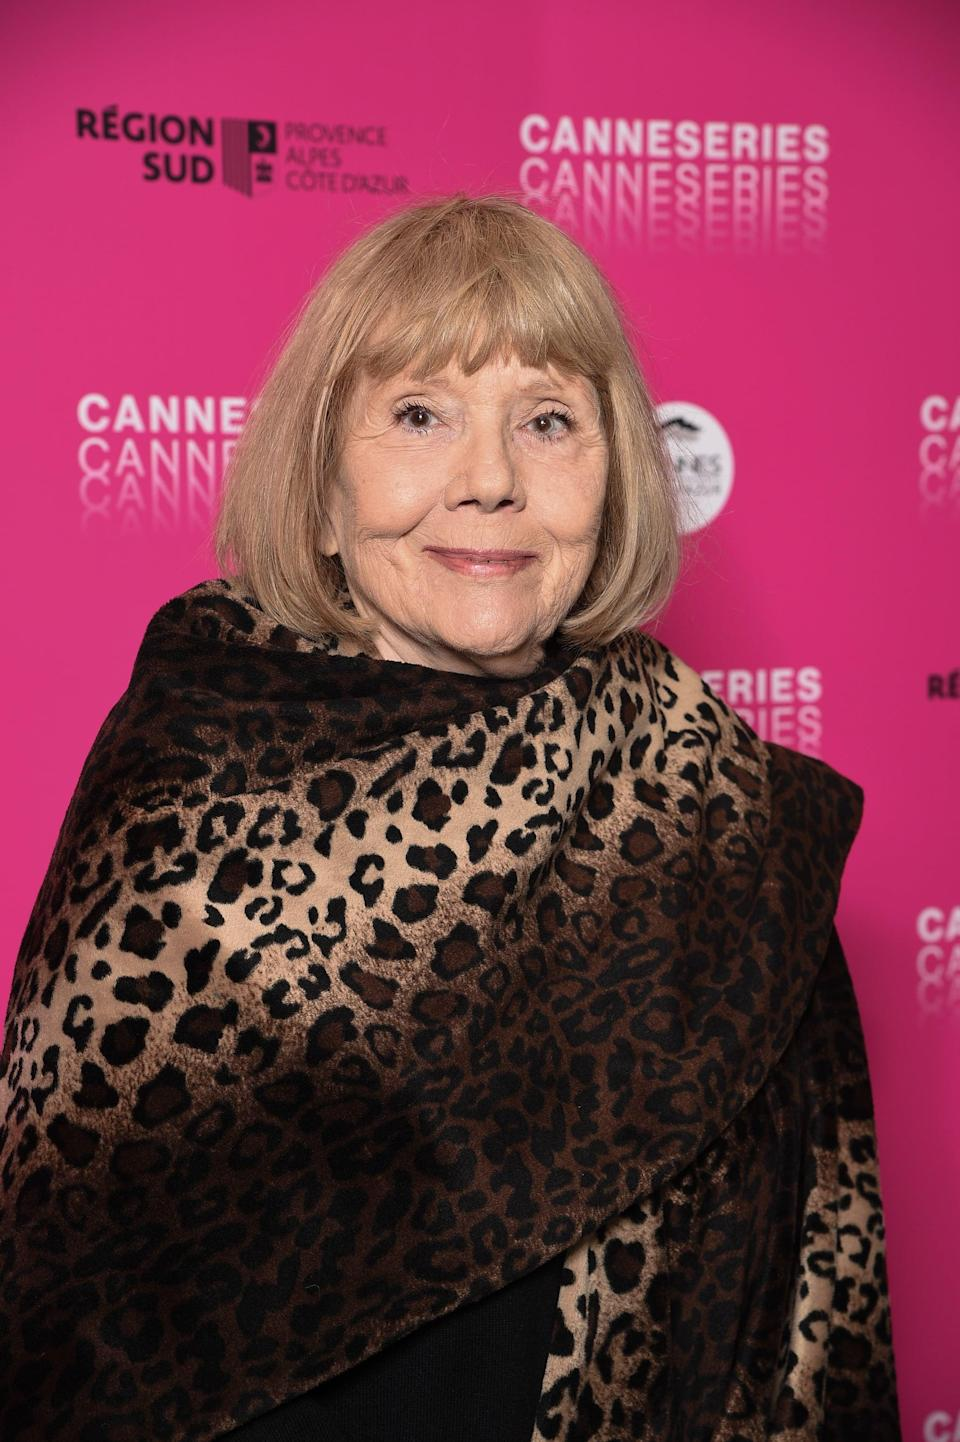 "<p>The actress, who was well known for her roles on <strong>Game of Thrones</strong>, in <strong>The Avengers</strong>, and in the James Bond franchise, <a href=""http://deadline.com/2020/09/diana-rigg-dies-games-of-thrones-the-avengers-bond-actress-was-82-1234574375/"" class=""link rapid-noclick-resp"" rel=""nofollow noopener"" target=""_blank"" data-ylk=""slk:died at age 82"">died at age 82</a> in September.<br></p>"